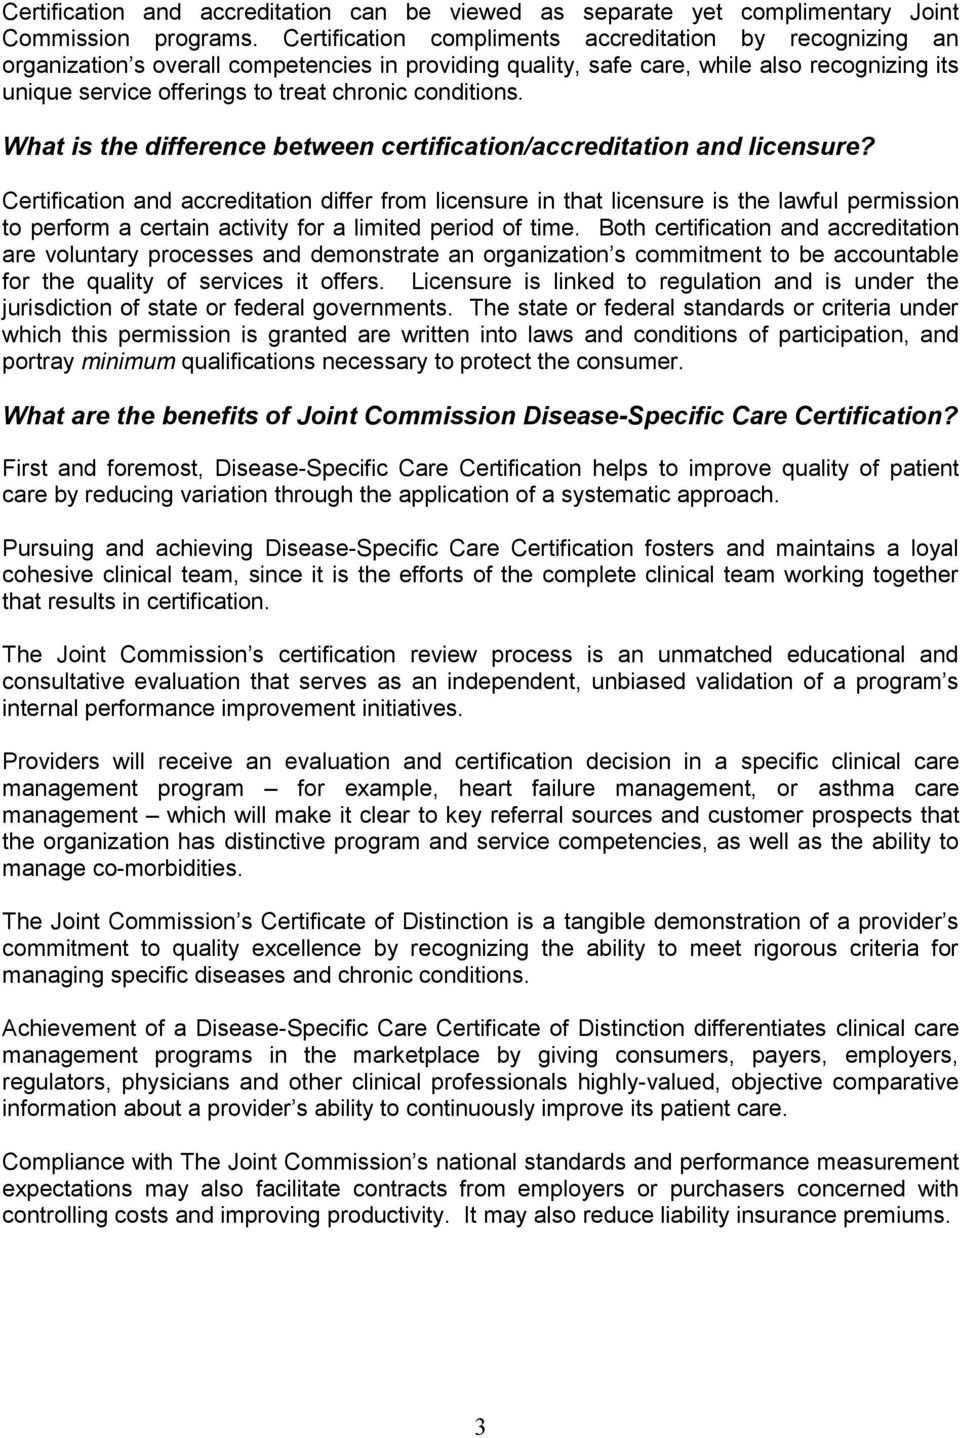 conditions. What is the difference between certification/accreditation and licensure?